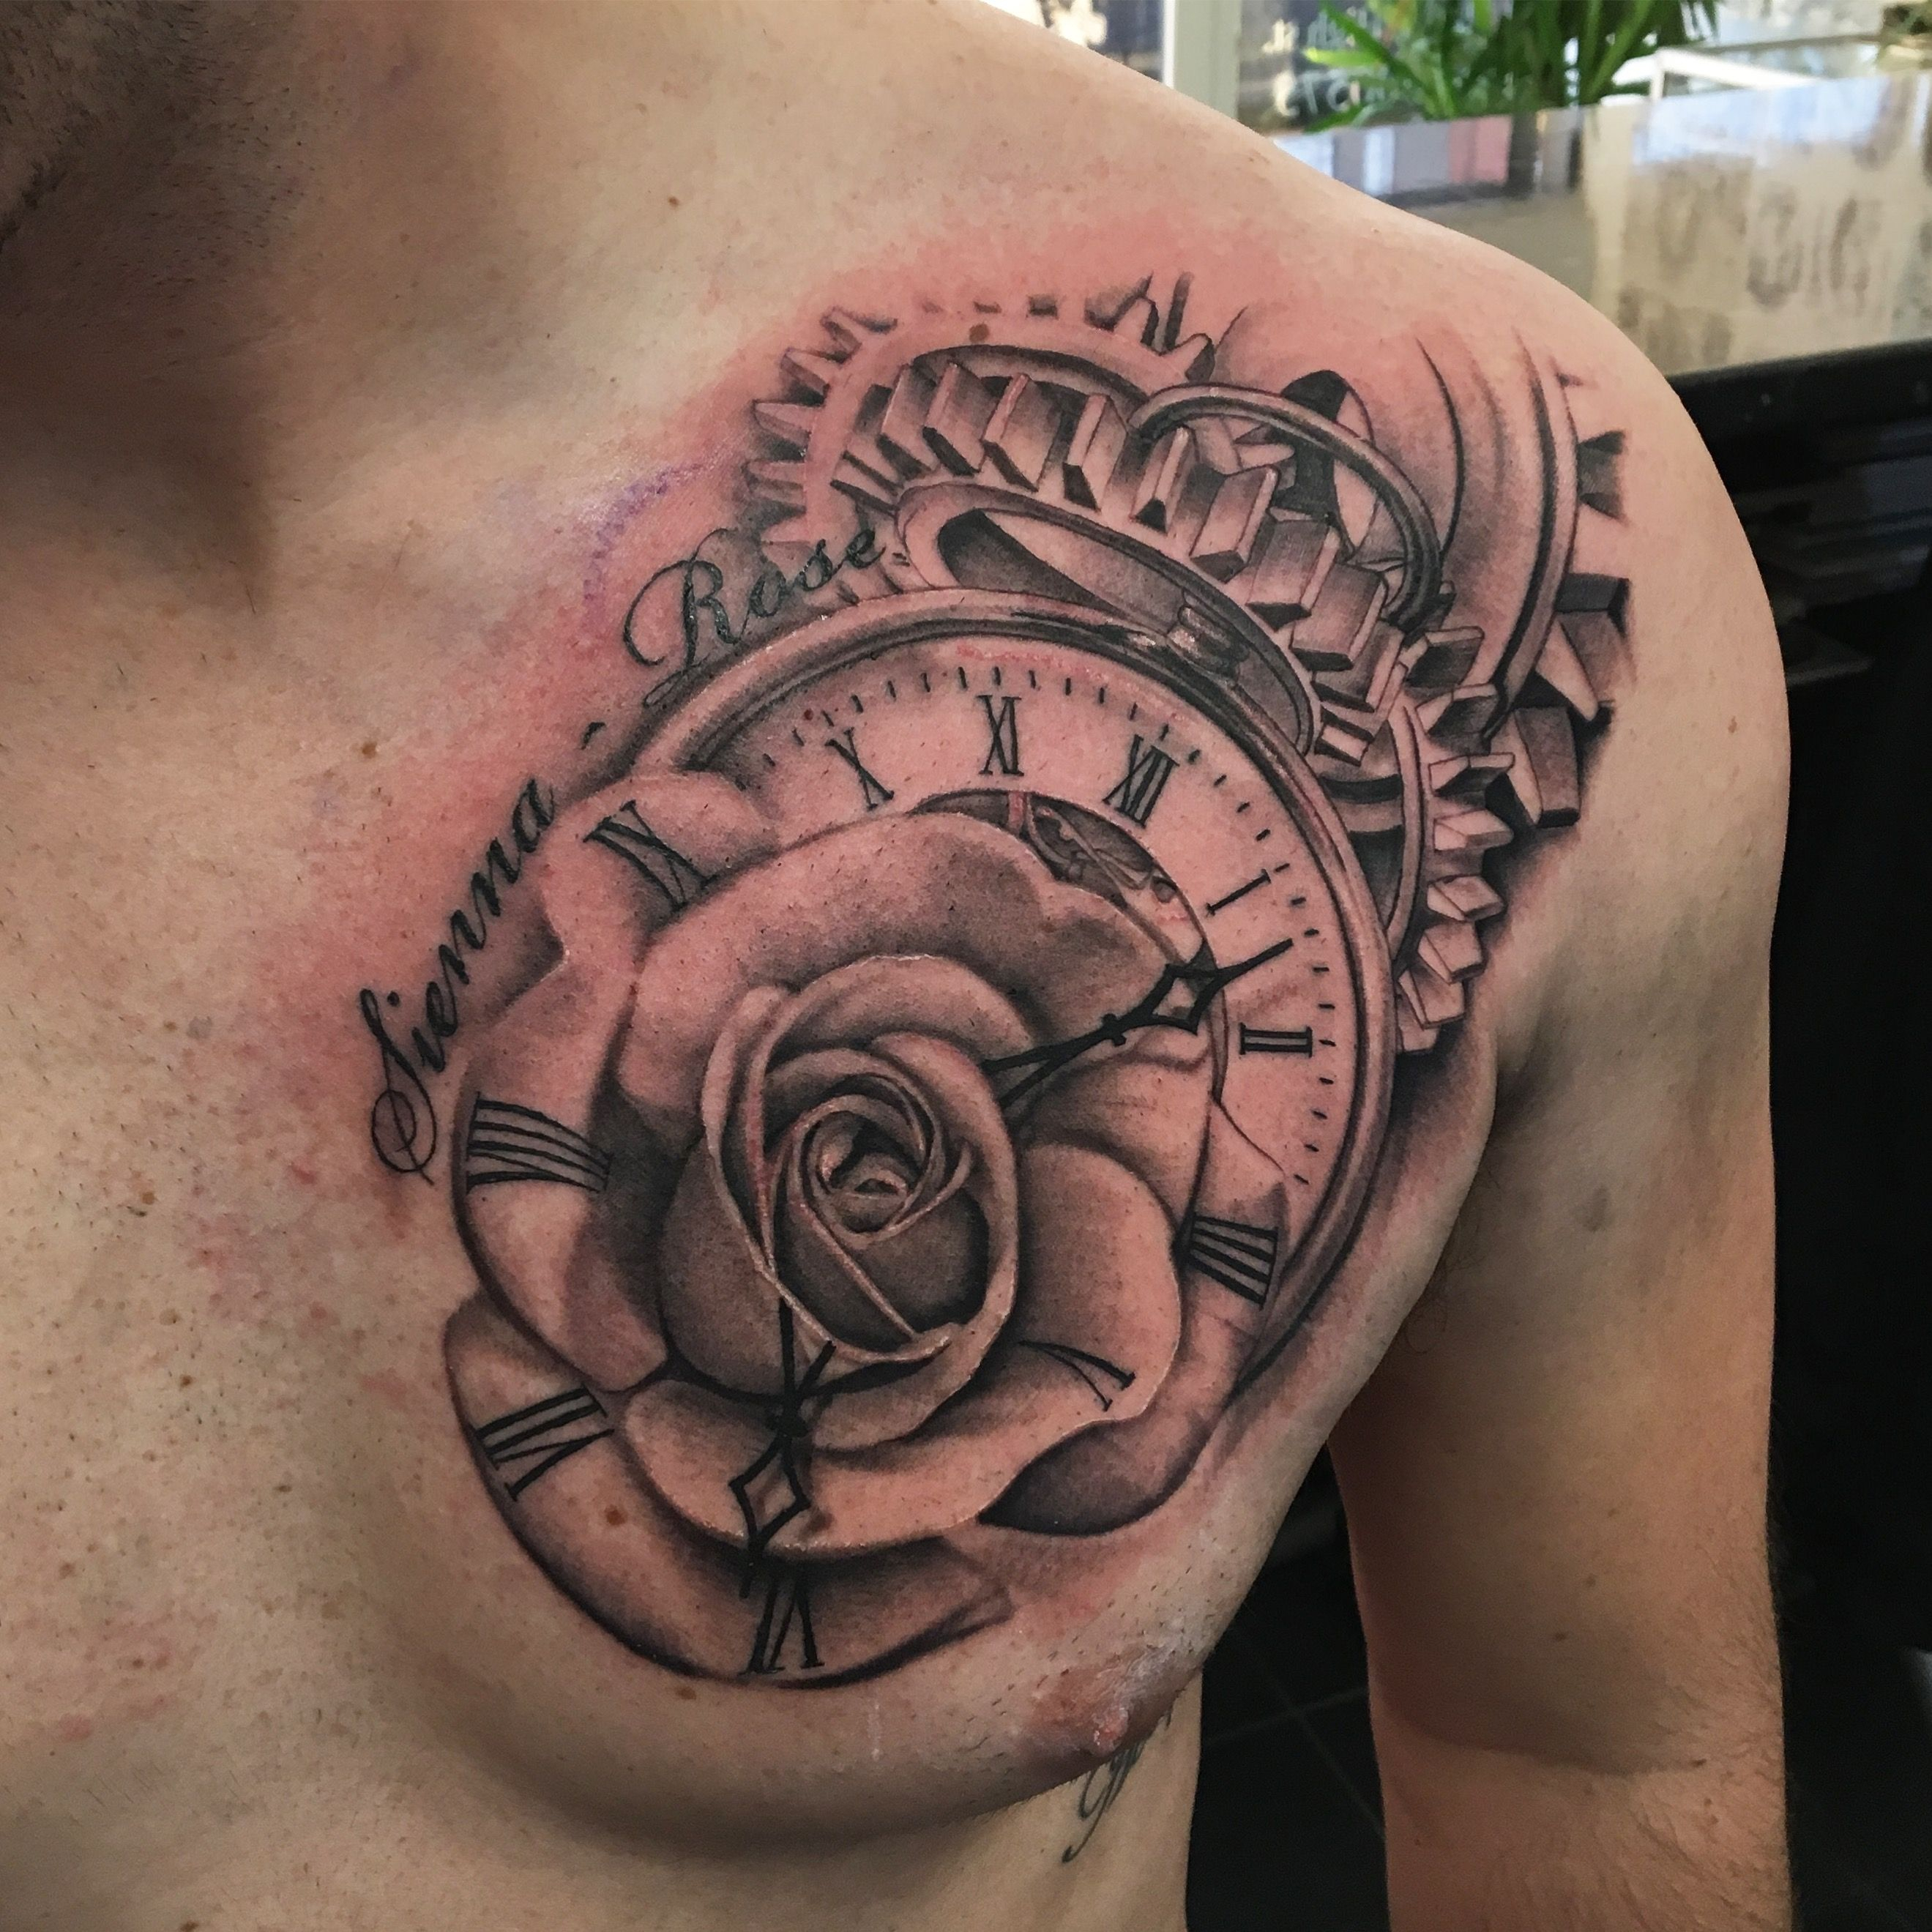 Clock Rose Time Chest Tattoo Chest Tattoo Rose Chest Tattoo for sizing 2639 X 2639